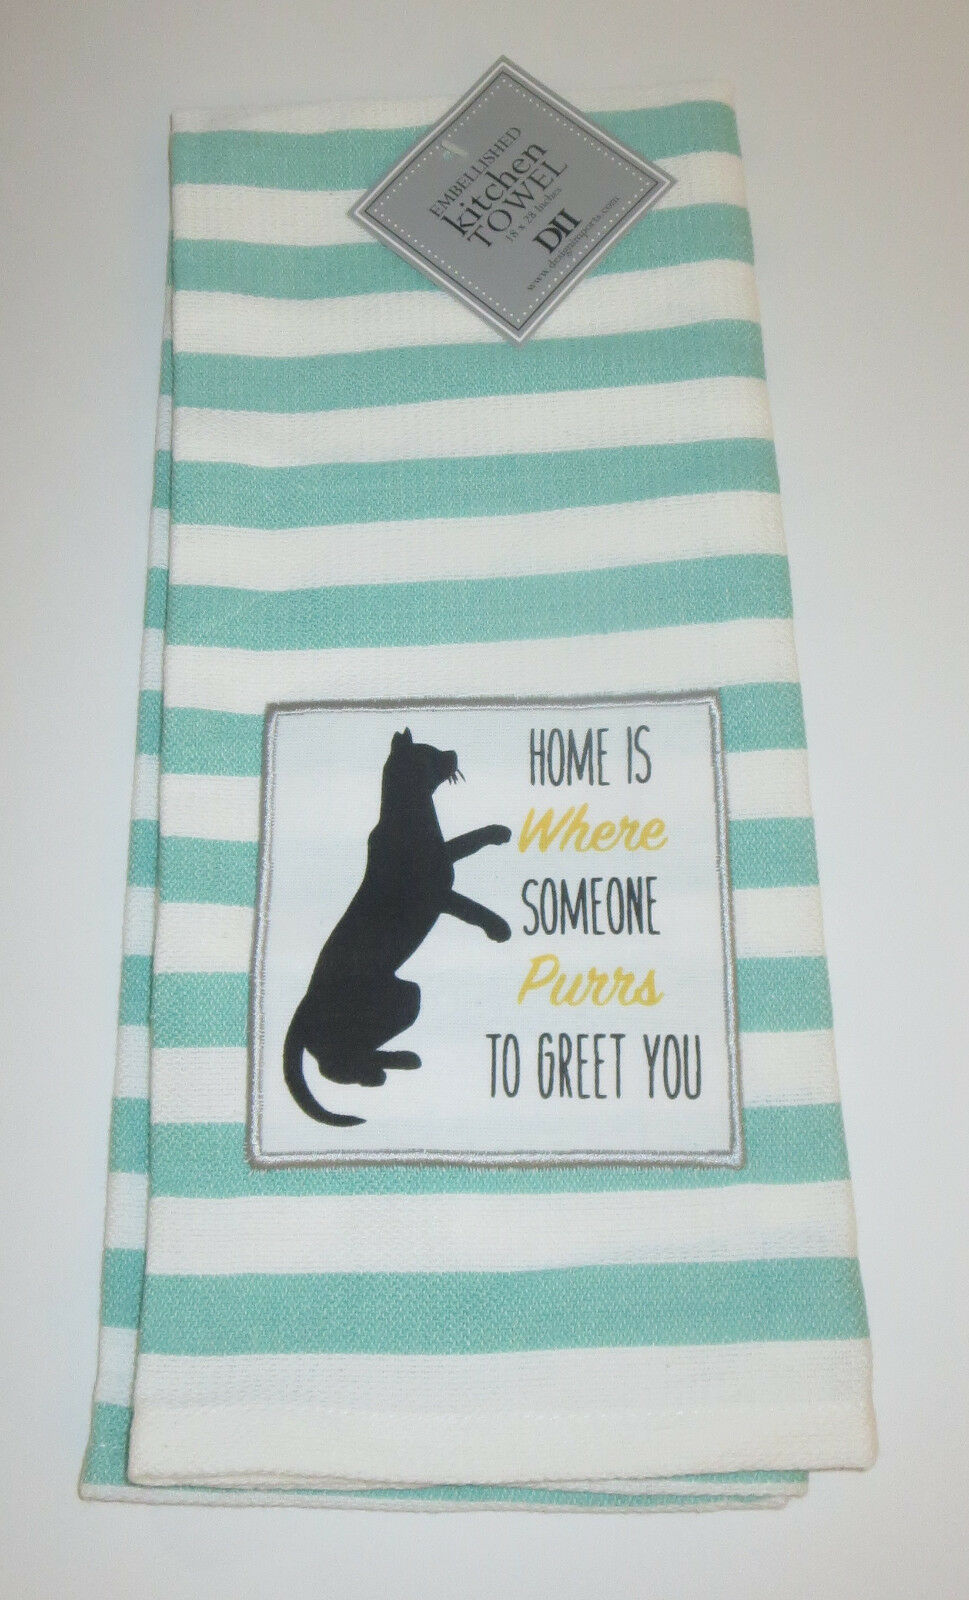 Home Is Where Someone Purrs To Greet You Dish Towel Cat Embellished New Striped